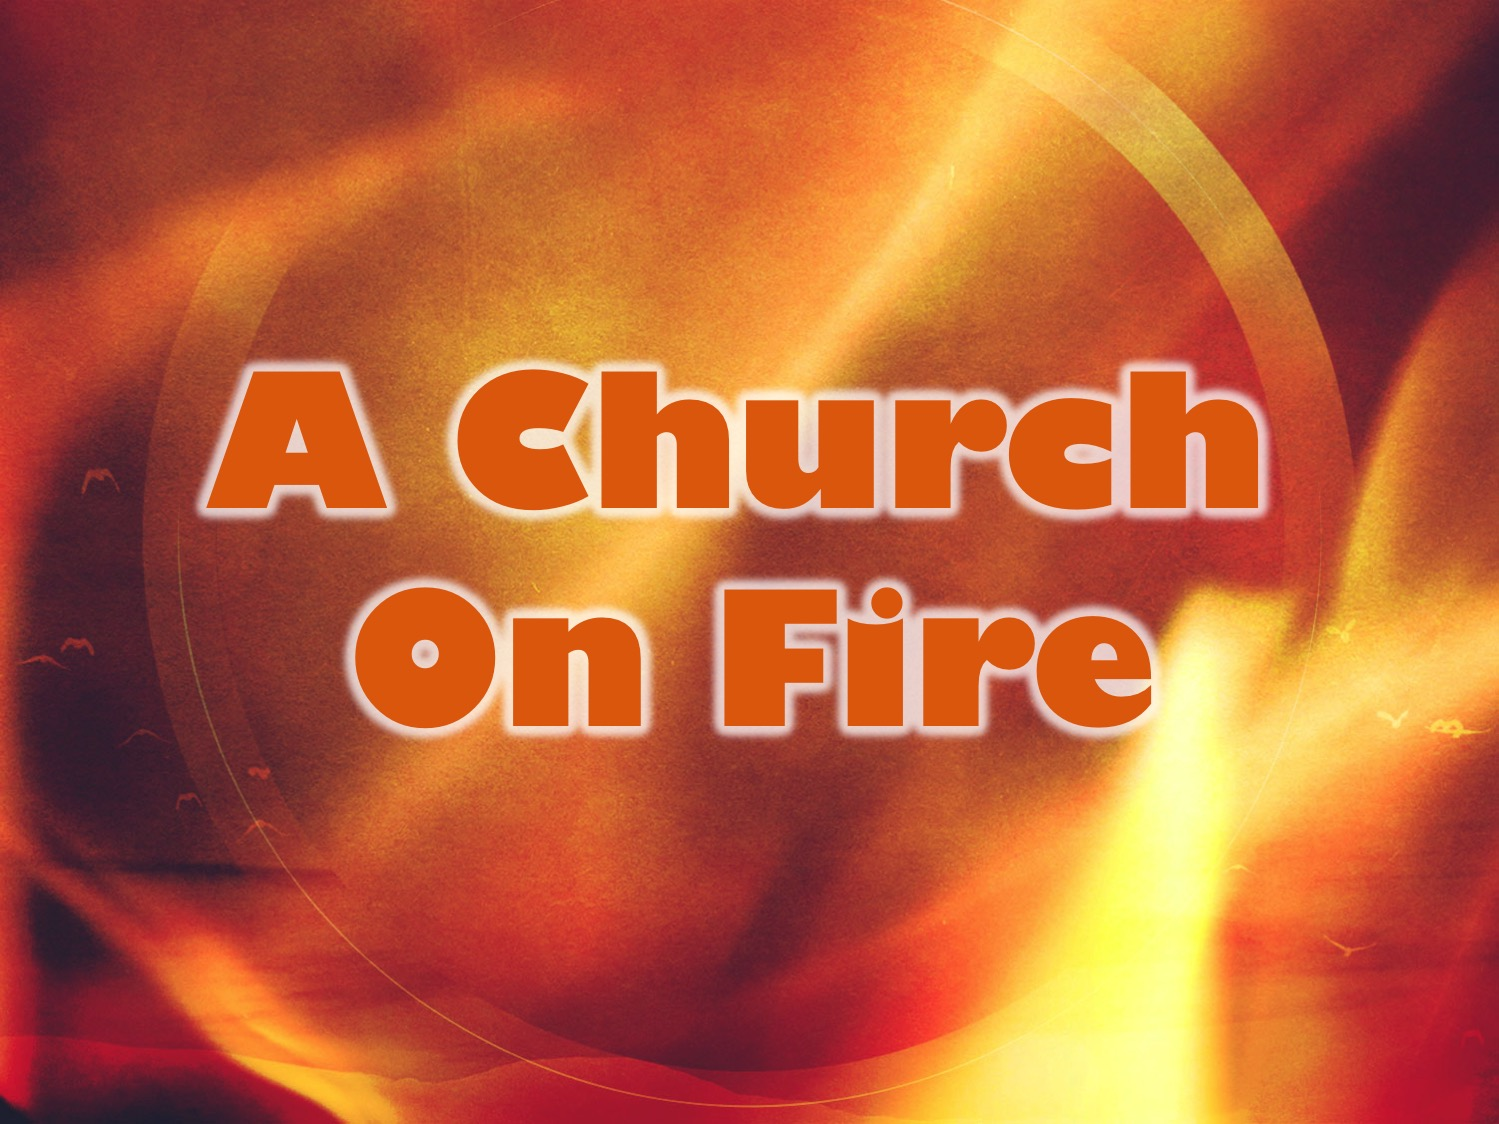 churchonfire